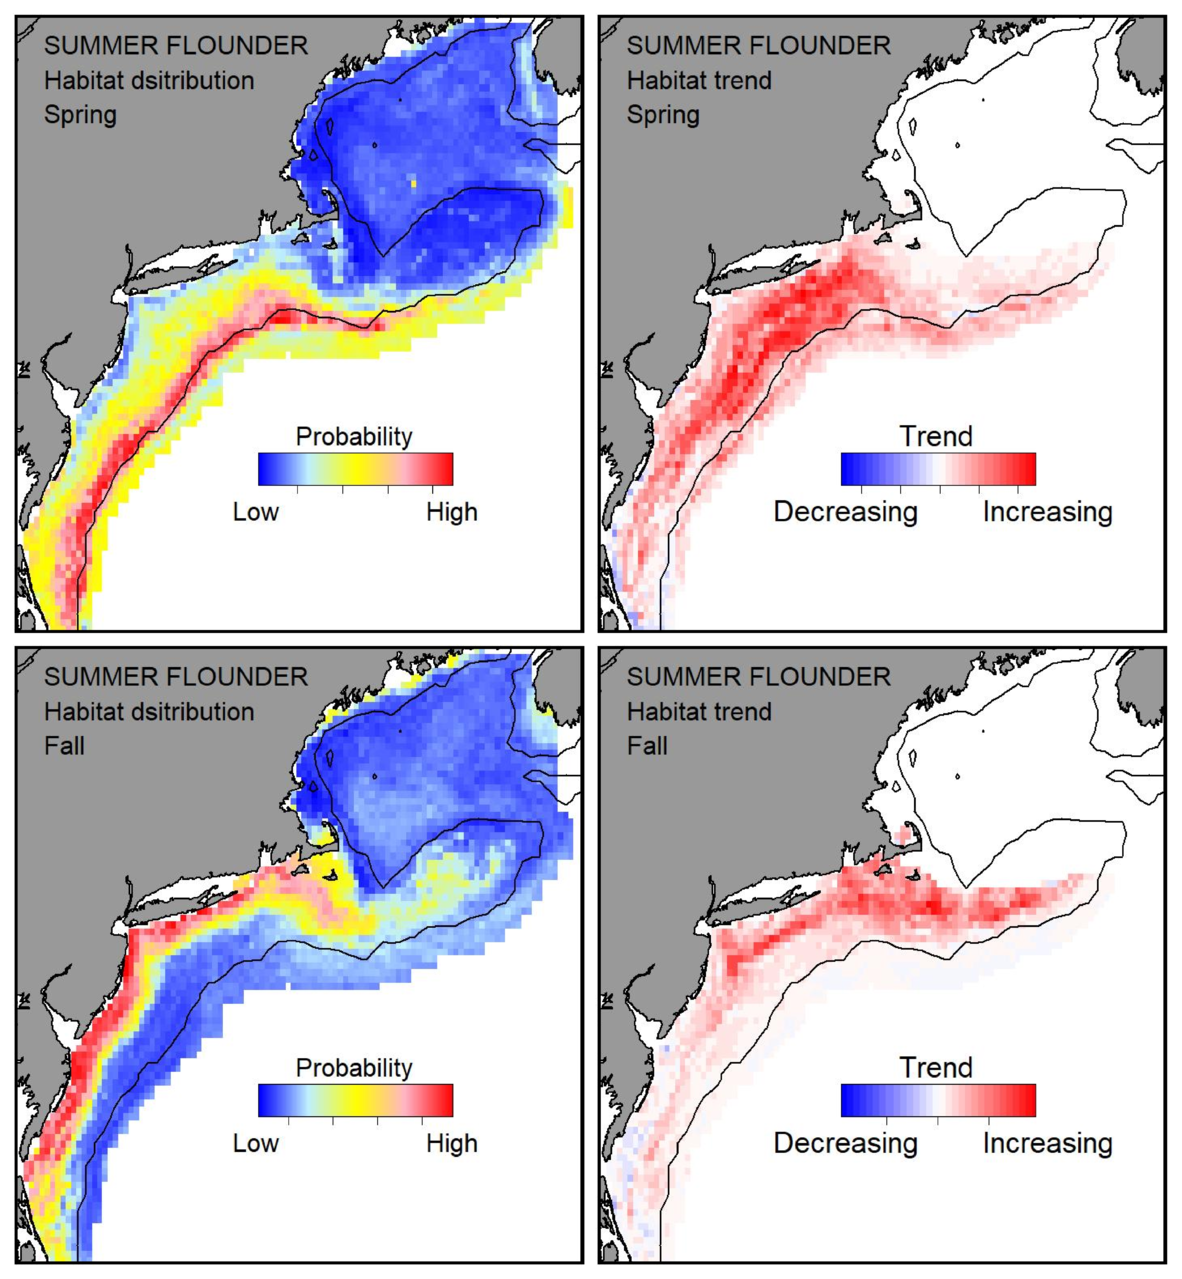 Probable habitat distribution for summer flounder showing the highest concentration and increasing trend in the Gulf of Maine during the spring. Bottom row: Probable habitat distribution for summer flounder showing the highest concentration and increasing trend in the Gulf of Maine during the fall.